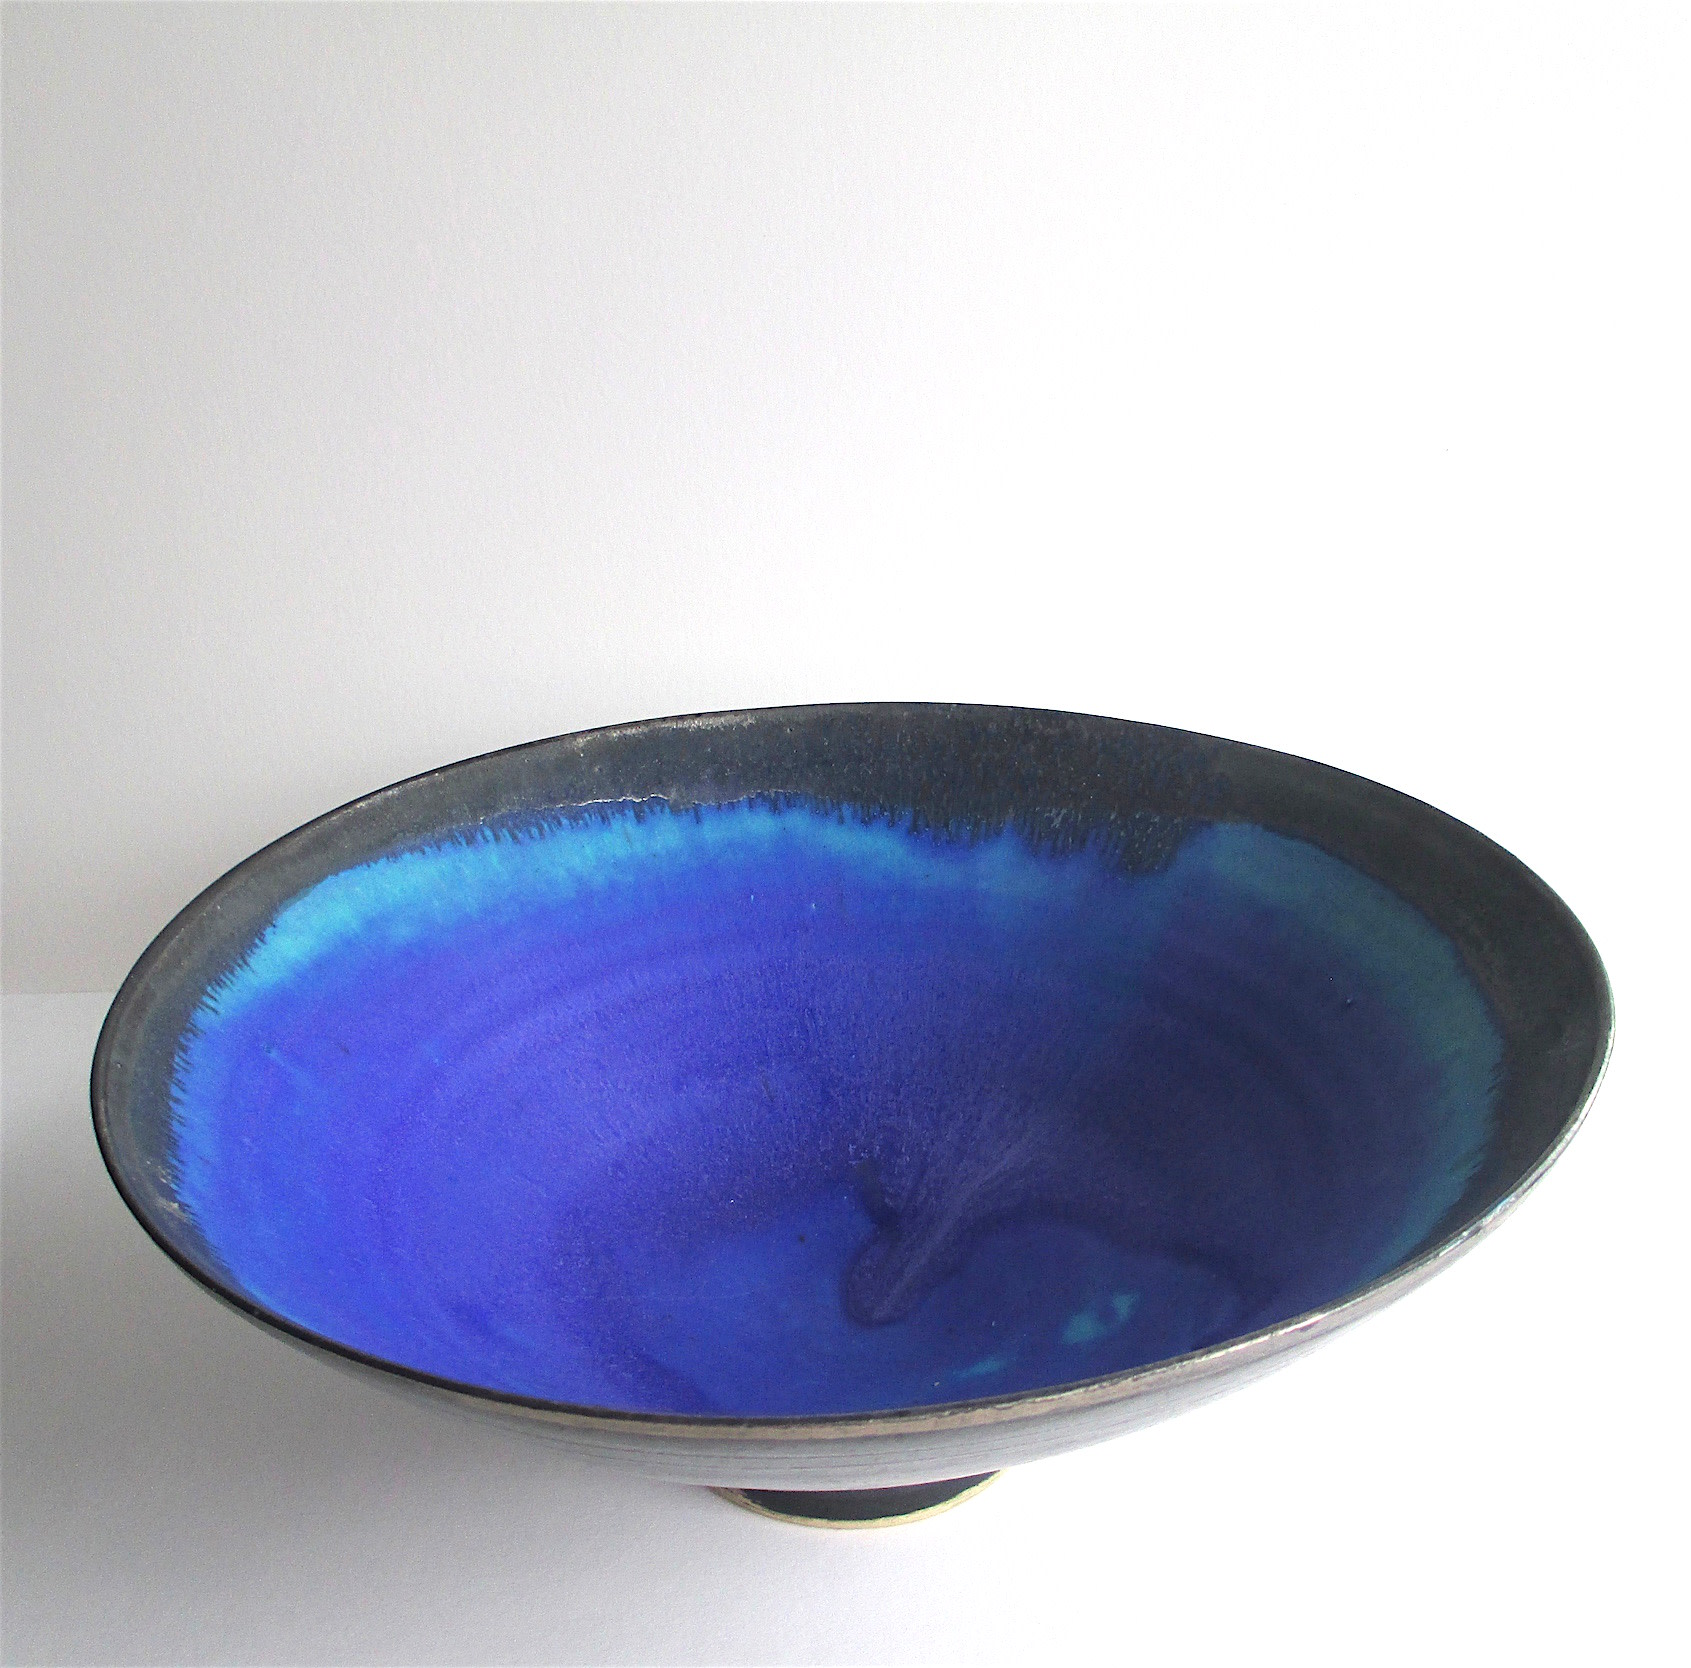 "<span class=""link fancybox-details-link""><a href=""/artists/44-sarah-perry/works/6973-sarah-perry-silver-lustred-blue-pool-bowl-2020/"">View Detail Page</a></span><div class=""artist""><strong>Sarah Perry</strong></div> <div class=""title""><em>Silver lustred Blue Pool Bowl</em>, 2020</div> <div class=""signed_and_dated"">labelled on the bottom</div> <div class=""medium"">Stoneware</div> <div class=""dimensions"">h. 12 x 26 cm </div><div class=""price"">£429.00</div><div class=""copyright_line"">Own Art: £ 42.90 x 10 Months, 0% APR</div>"